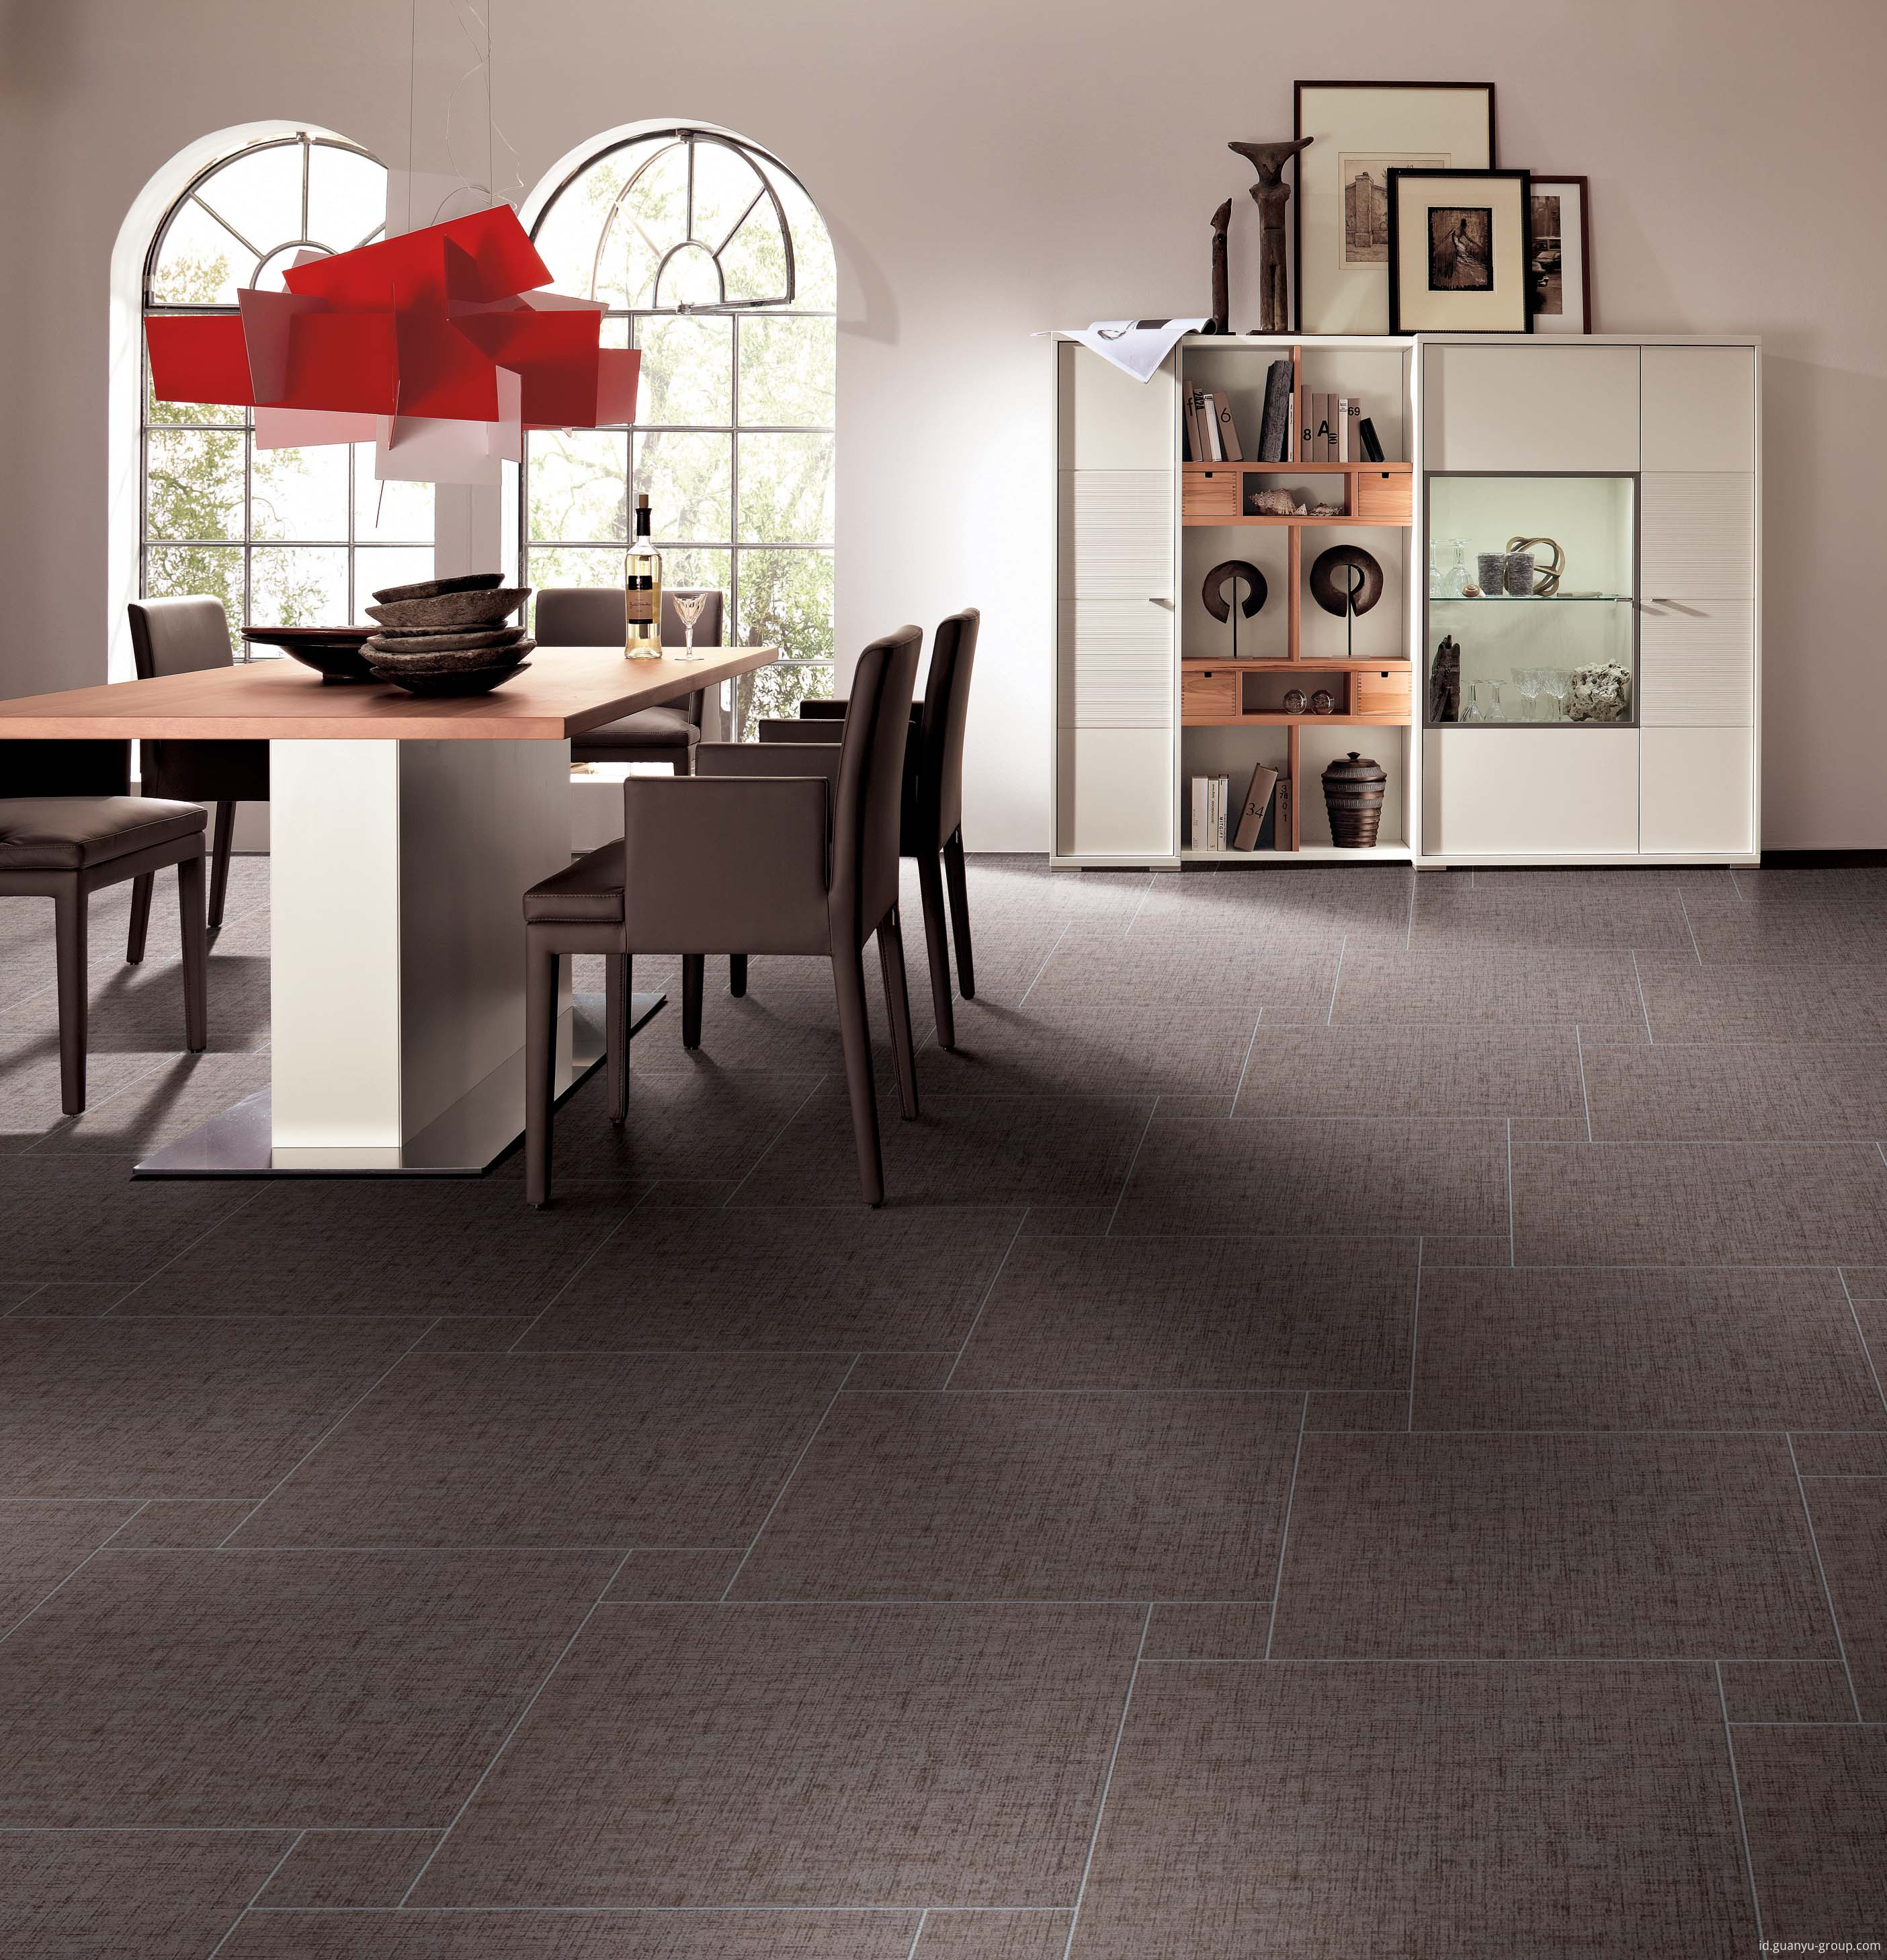 Brocade Look Non-Slip Porcelain Tile